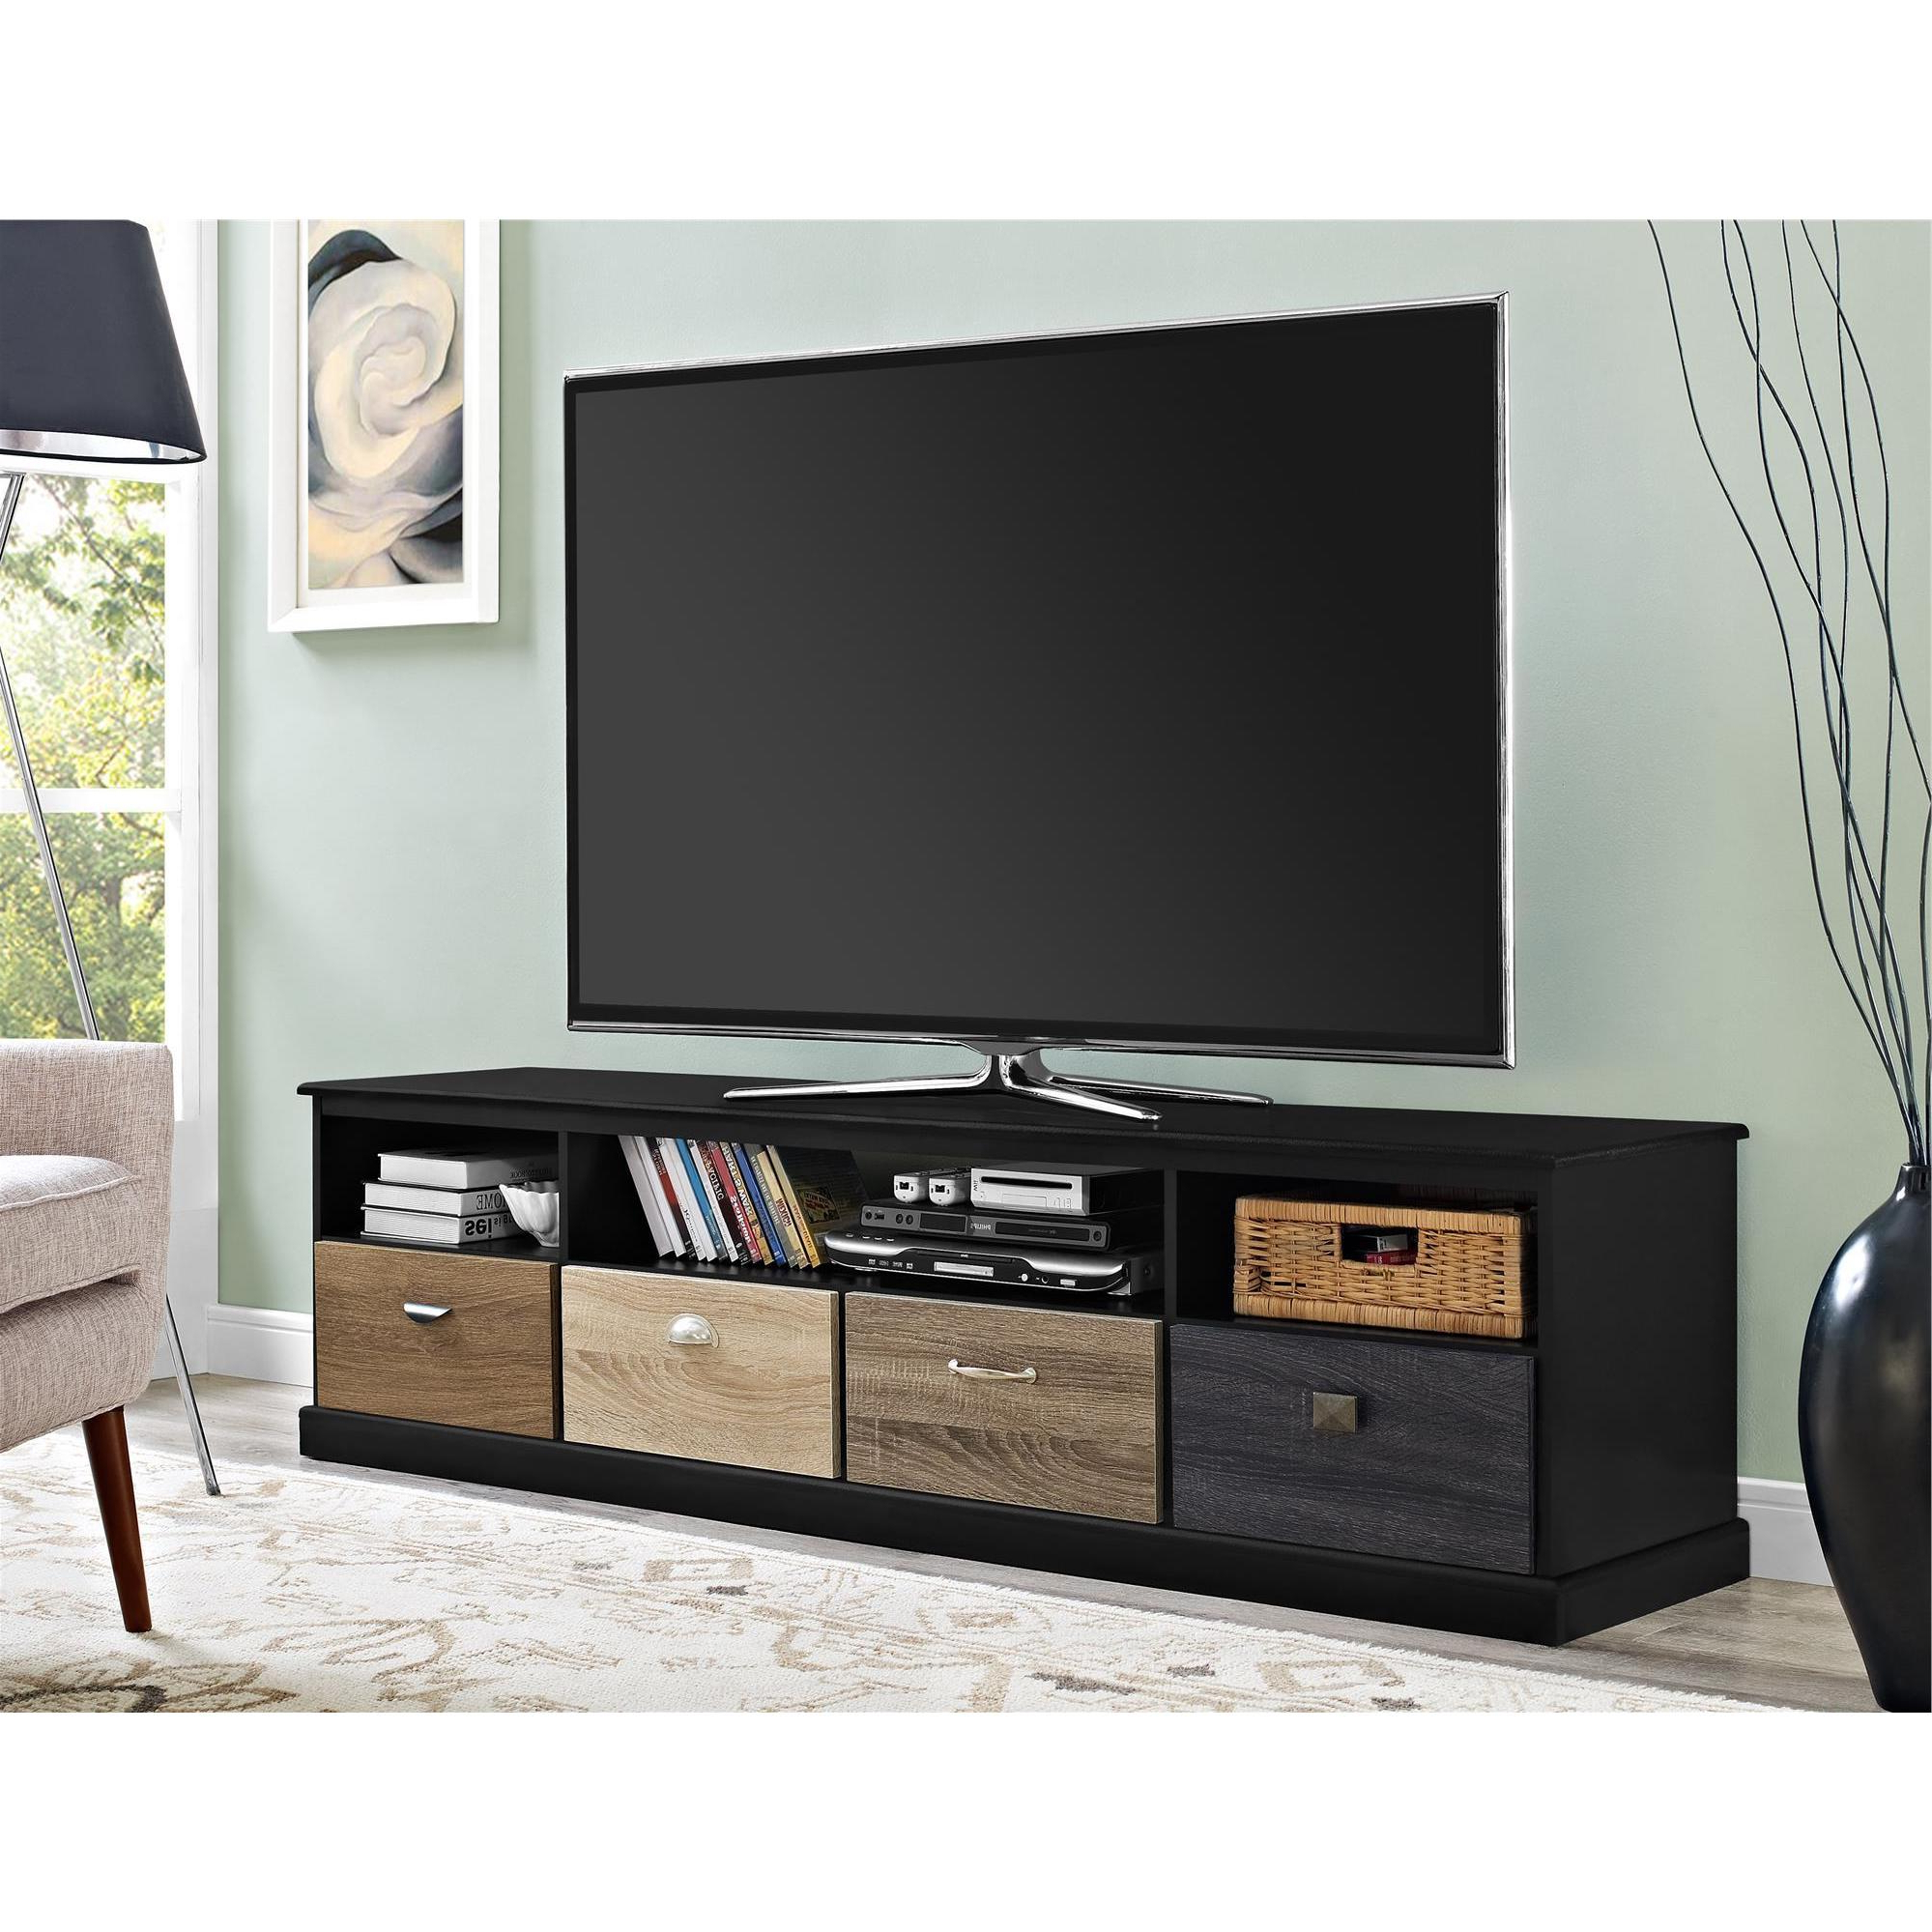 Avenue Greene Mercer 65 Inch Black Tv Console With Multicolored Drawer Fronts Inside Kilian Grey 74 Inch Tv Stands (View 3 of 20)